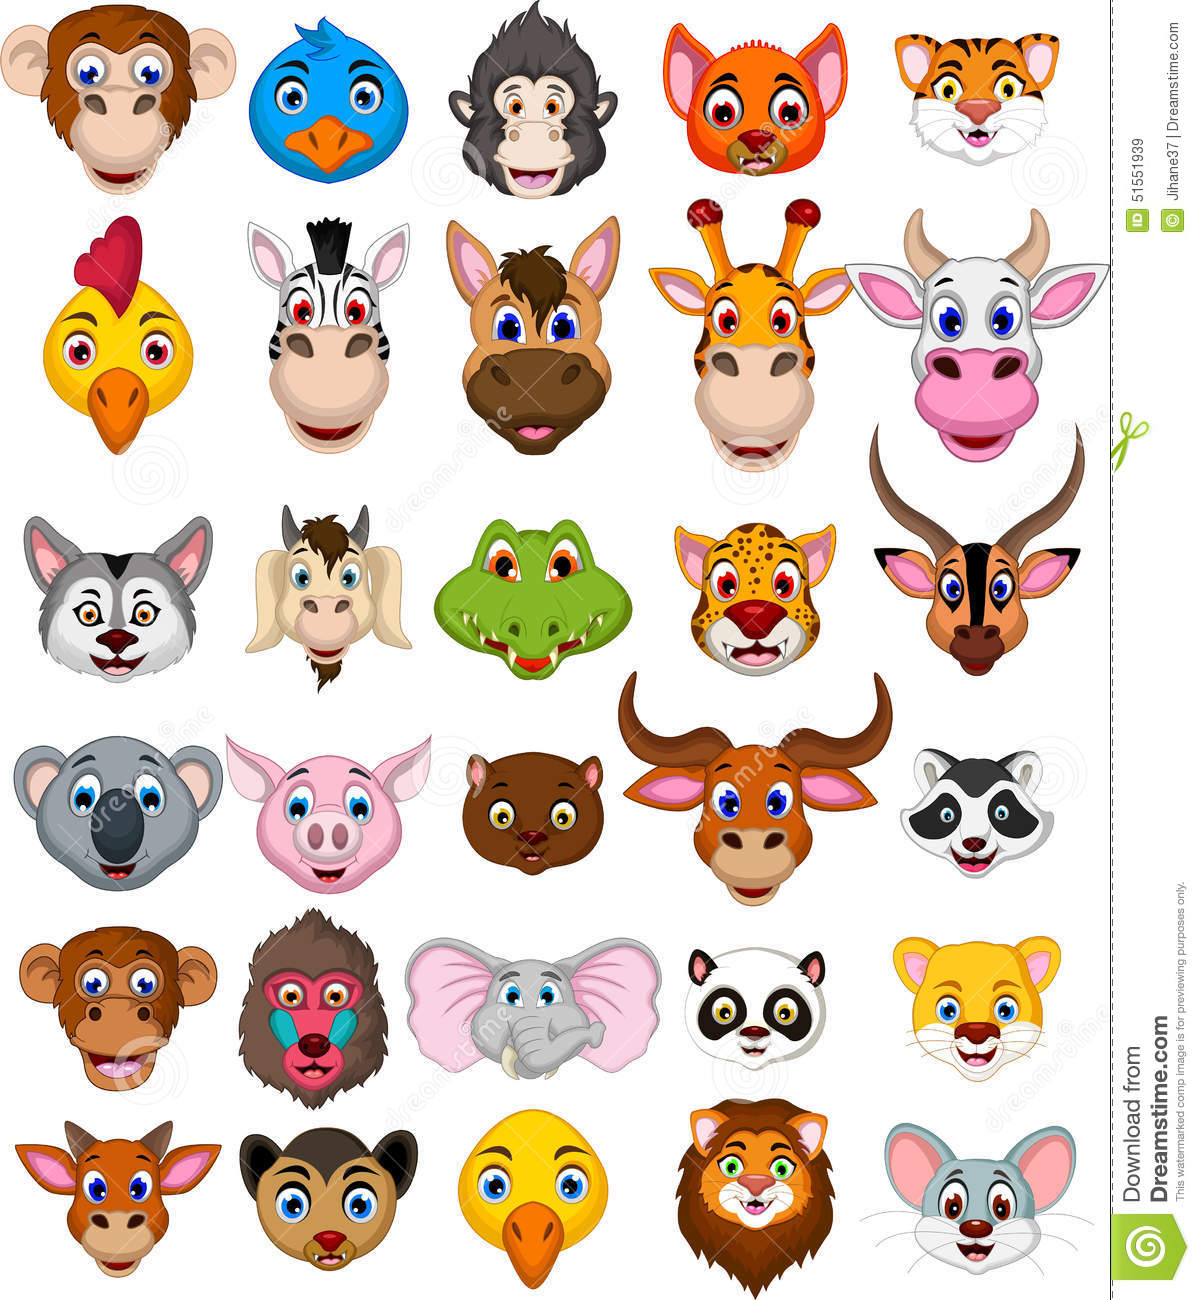 Stock Illustration Funny Cartoon Illustrations Ancient Medieval Age Roman Soldier German Crusader Spanish Conquistador French Image64403935 together with Printable Outline Of A Click Pen For Coluoring furthermore Stock Illustration Animal Head Cartoon Collection Illustration Image51551939 further Disney Incredibles Coloring Pages also Clip Art Zoo Animals. on cartoon animal numbers